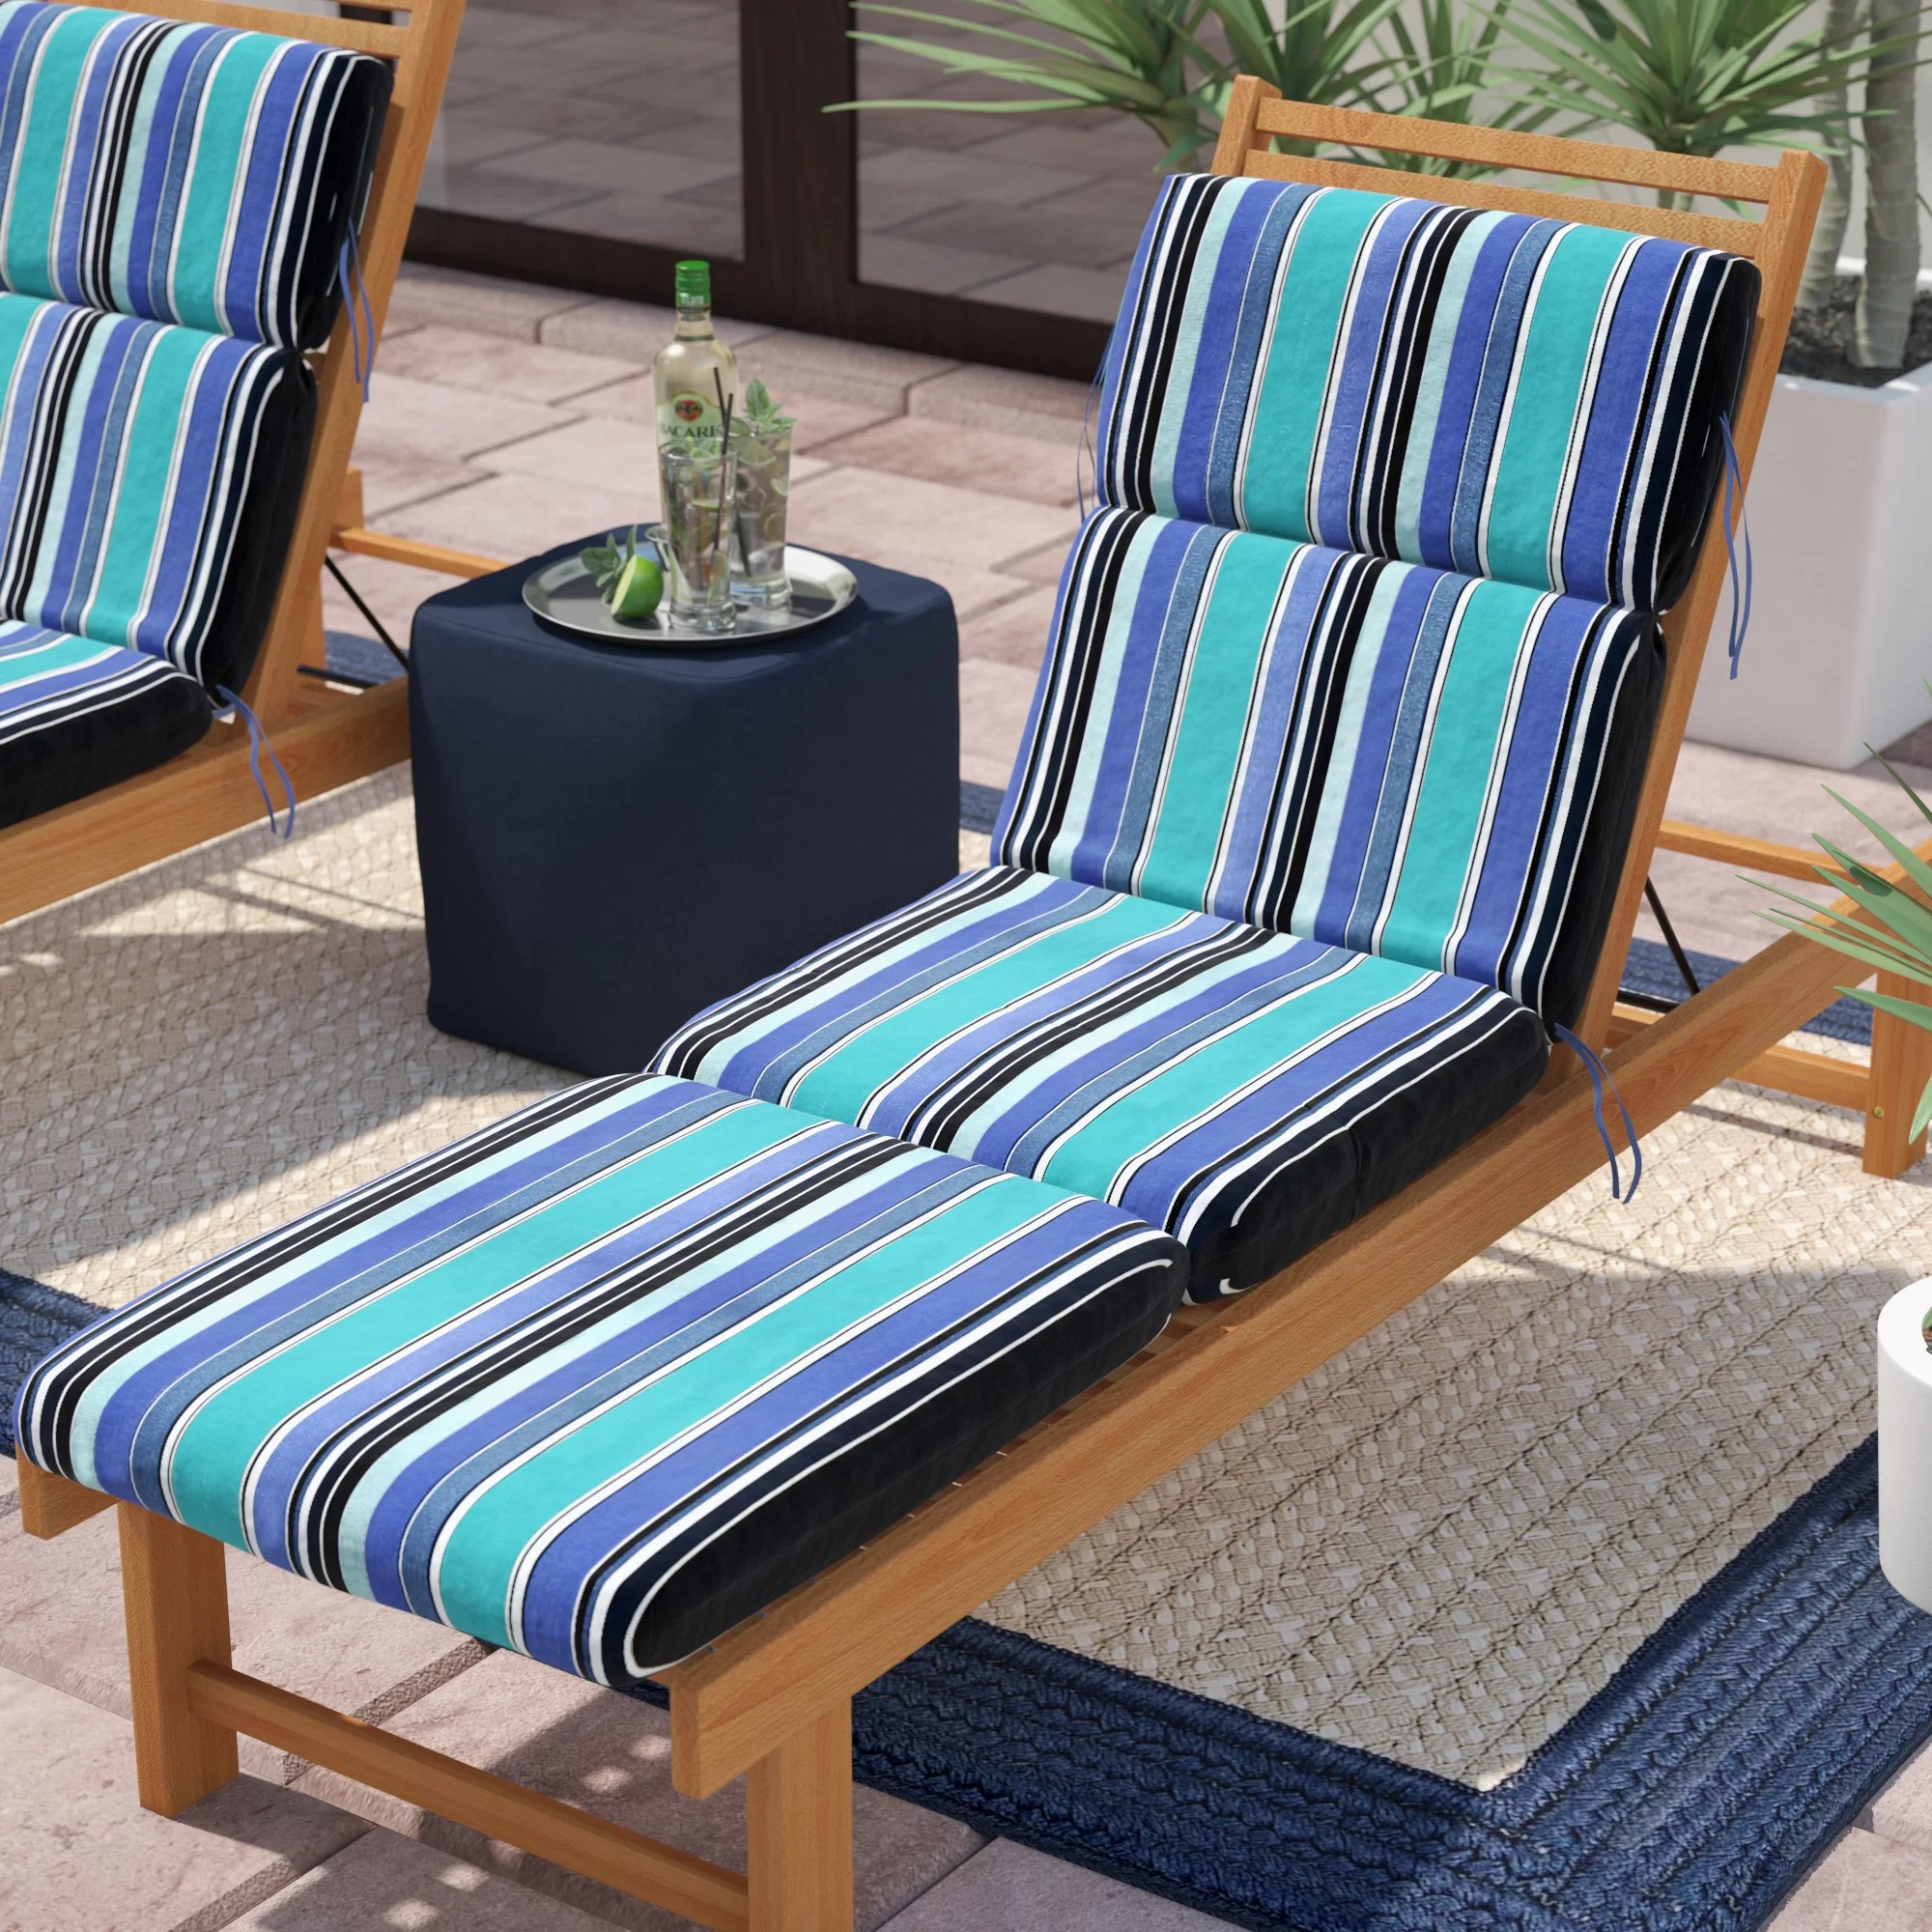 Beachcrest Home Dolce Oasis Indoor Outdoor Sunbrella Chaise Lounge Cushion Reviews Wayfair